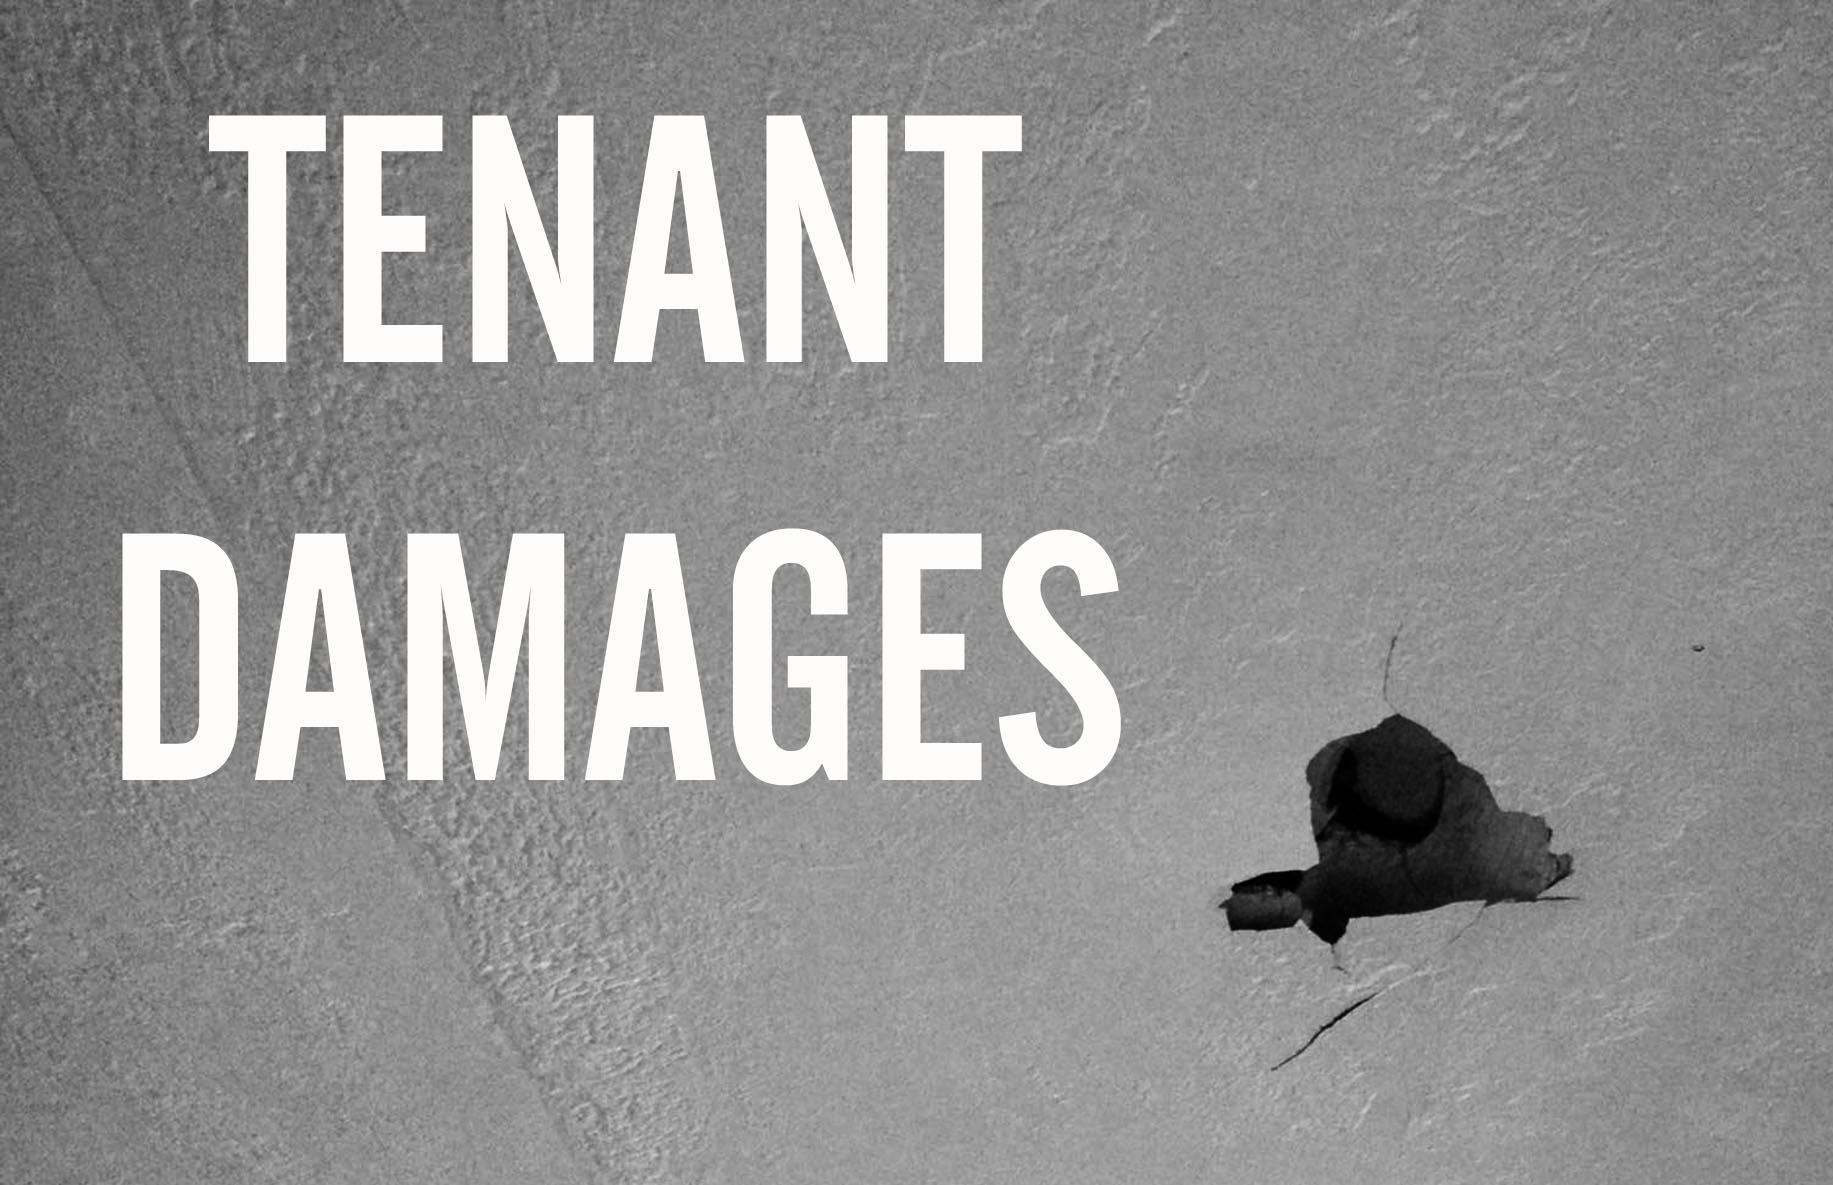 TENANT DAMAGES: Serving Justice to the Damage-Prone